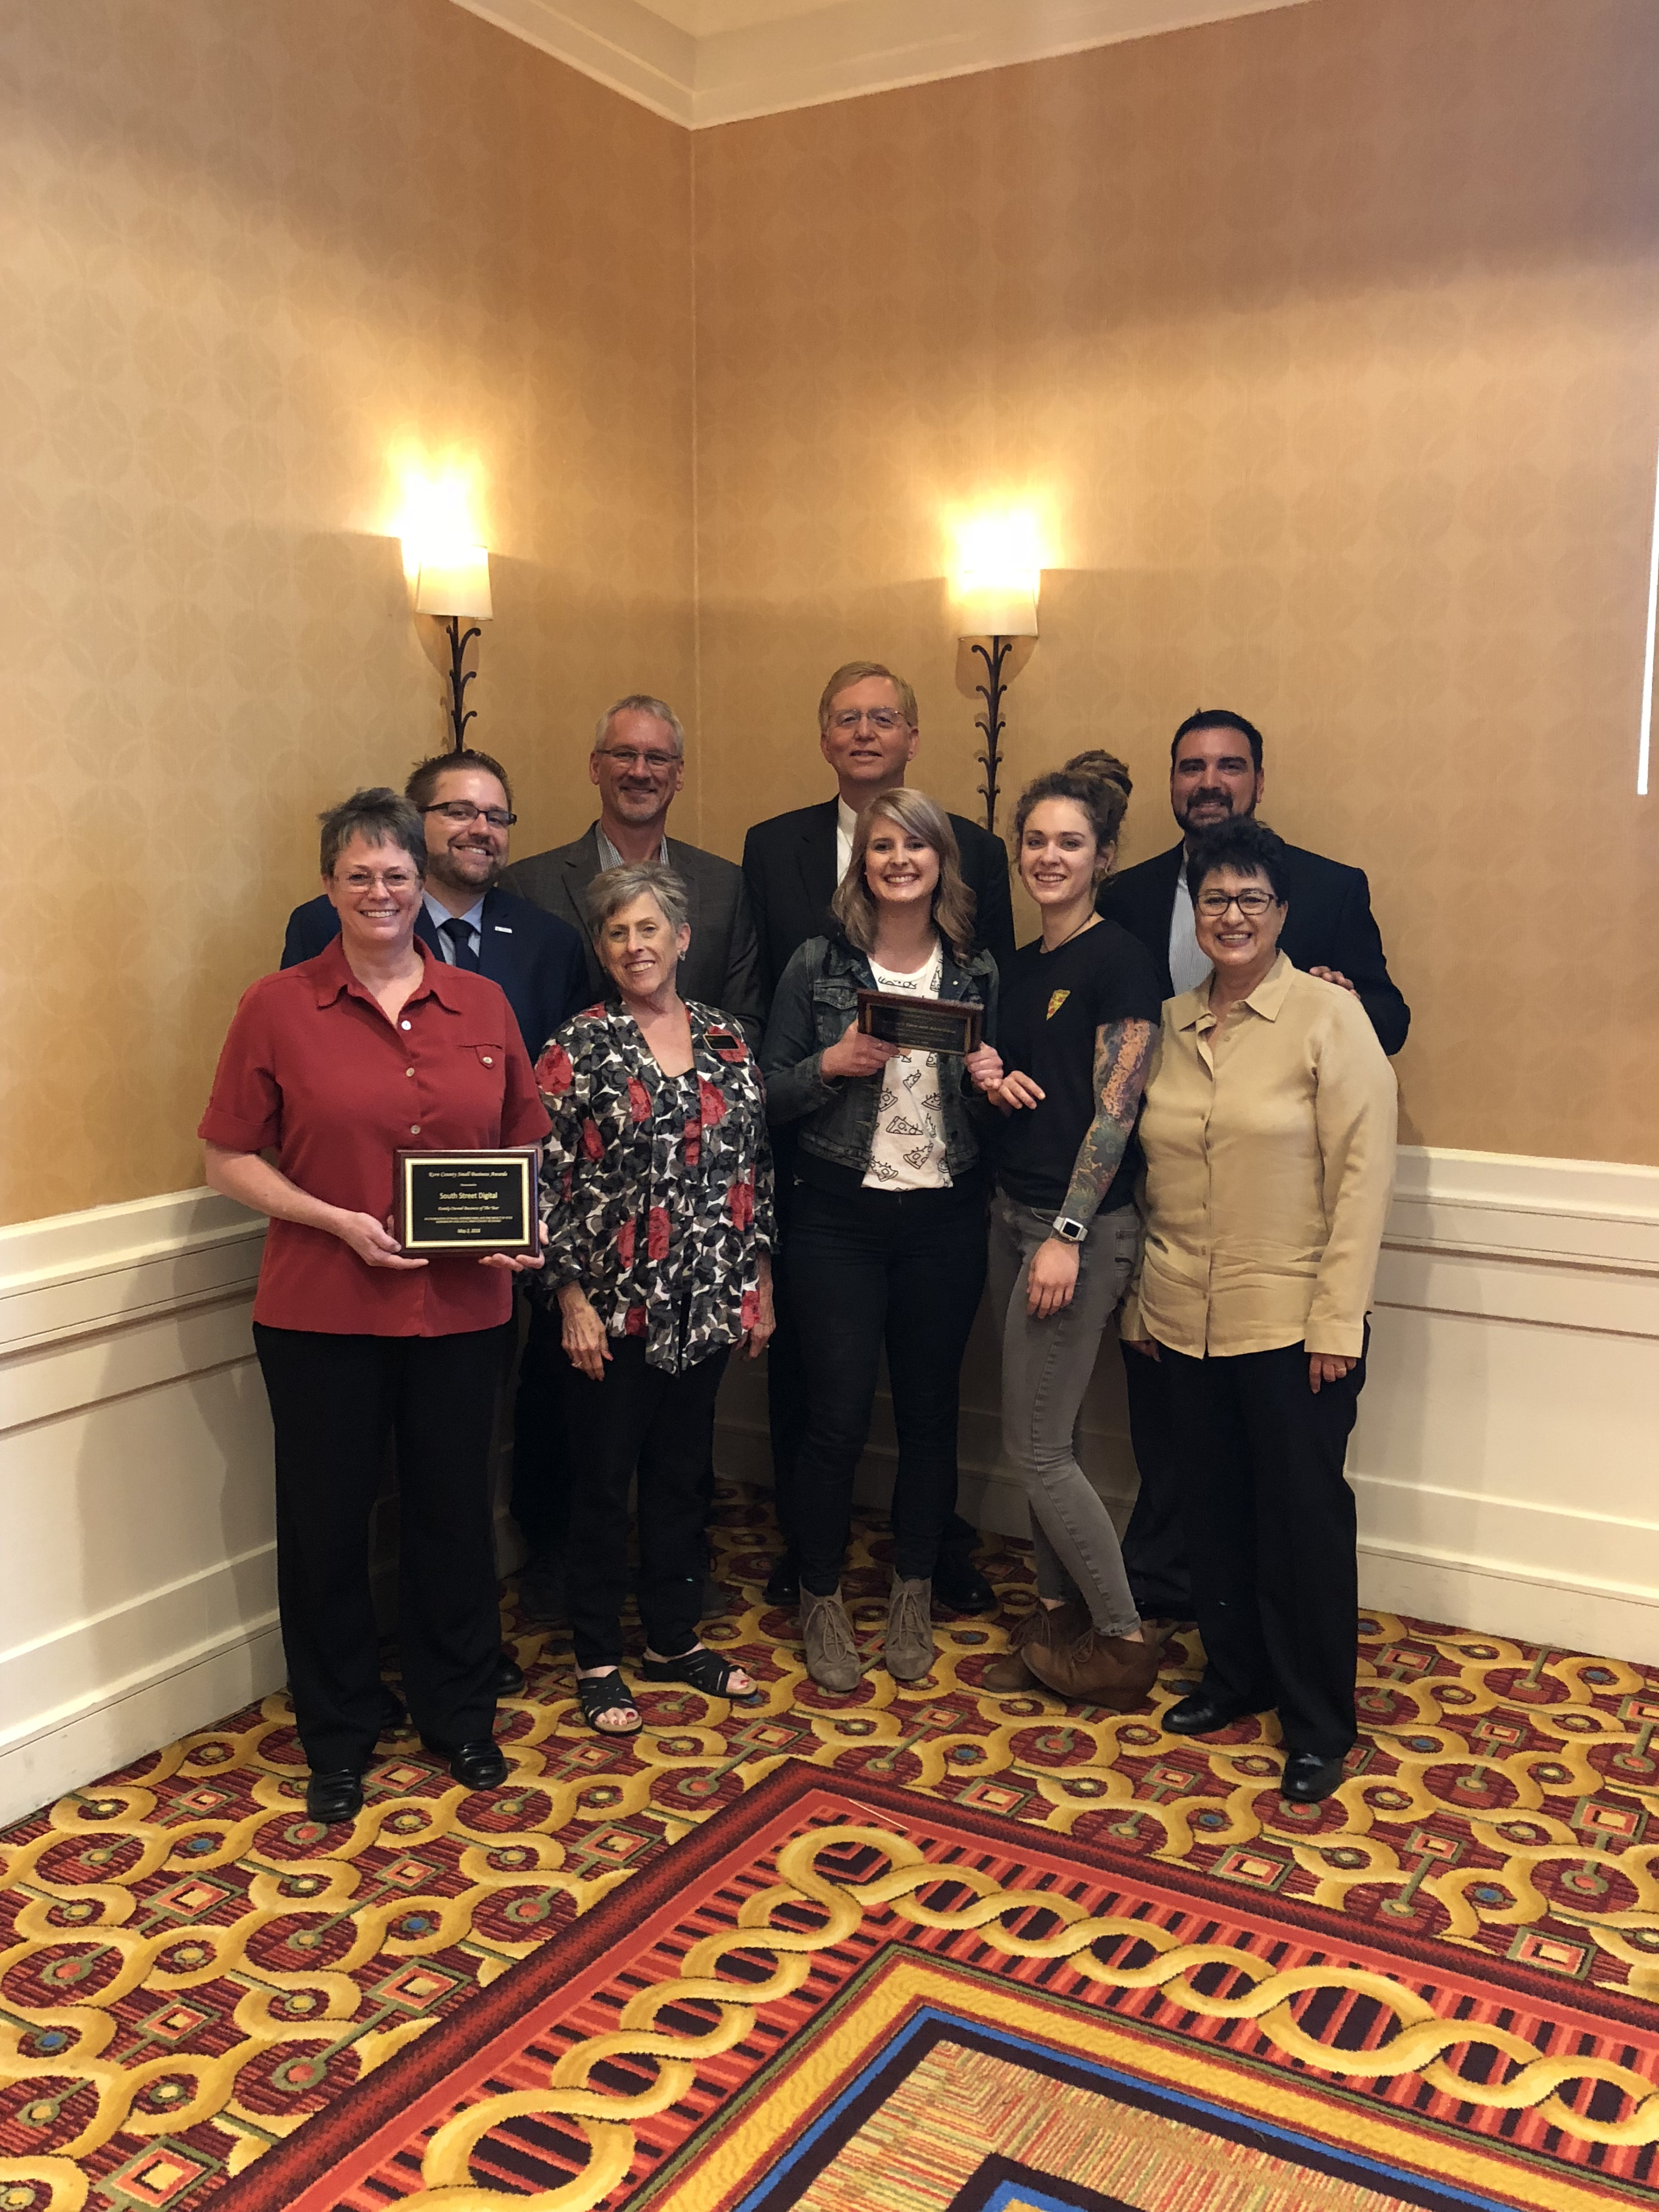 Group holding the SBDC award